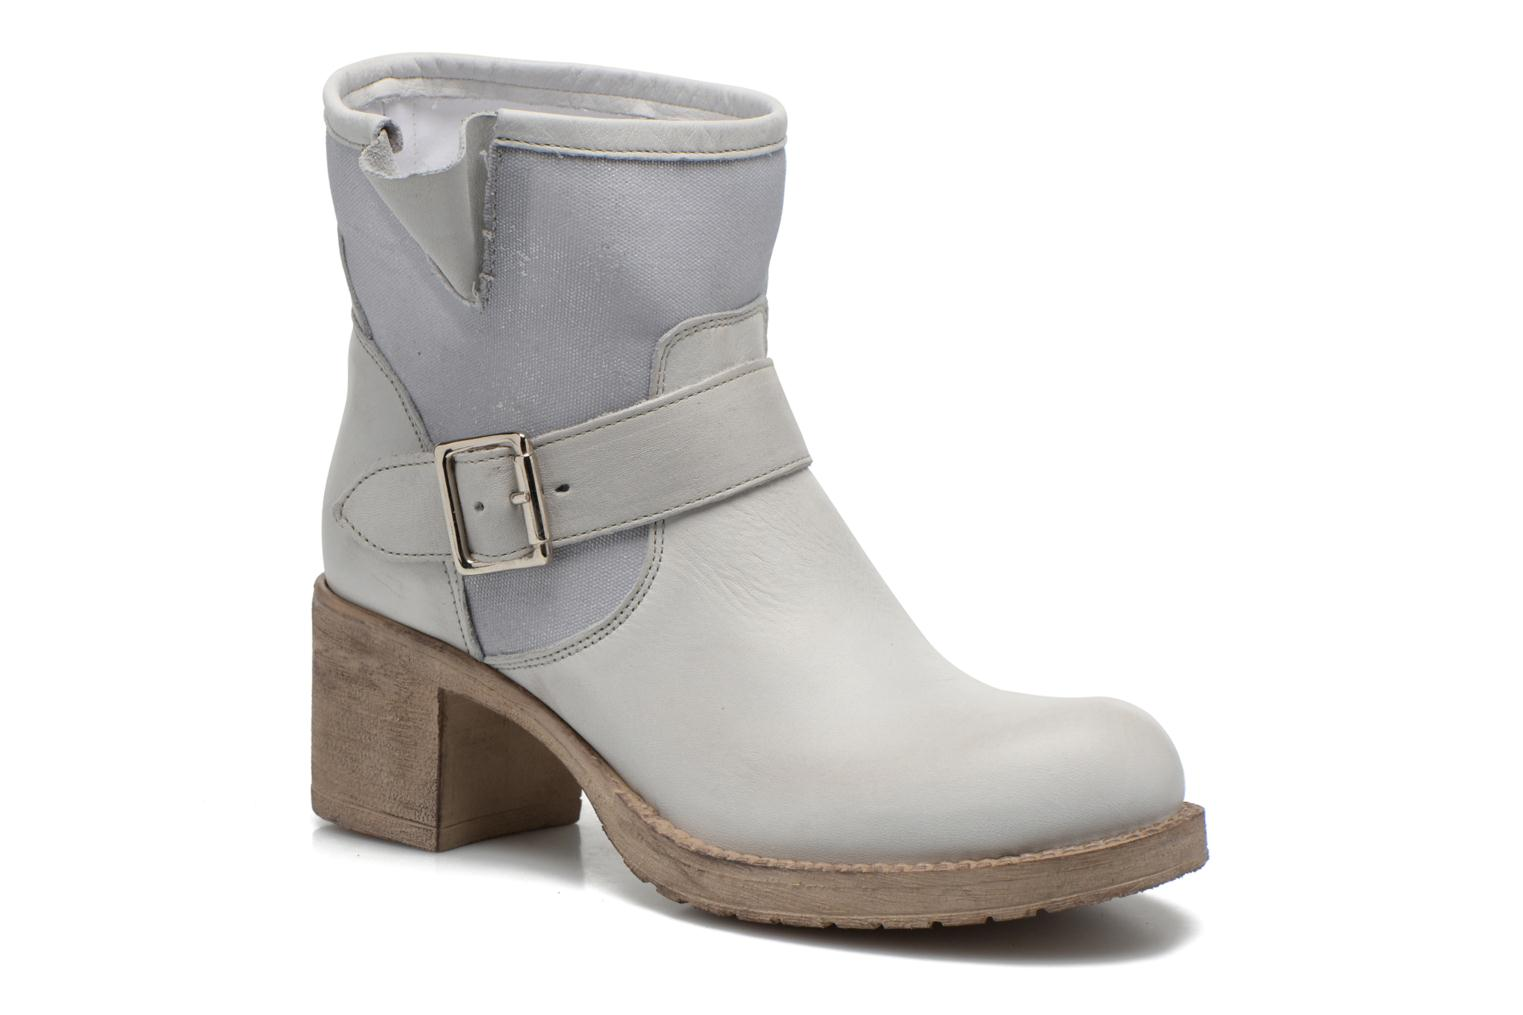 Sweet Lemon L.5 Ejode (Gris) (Gris) (Gris) - Bottines et boots chez | Une Bonne Conservation De La Chaleur